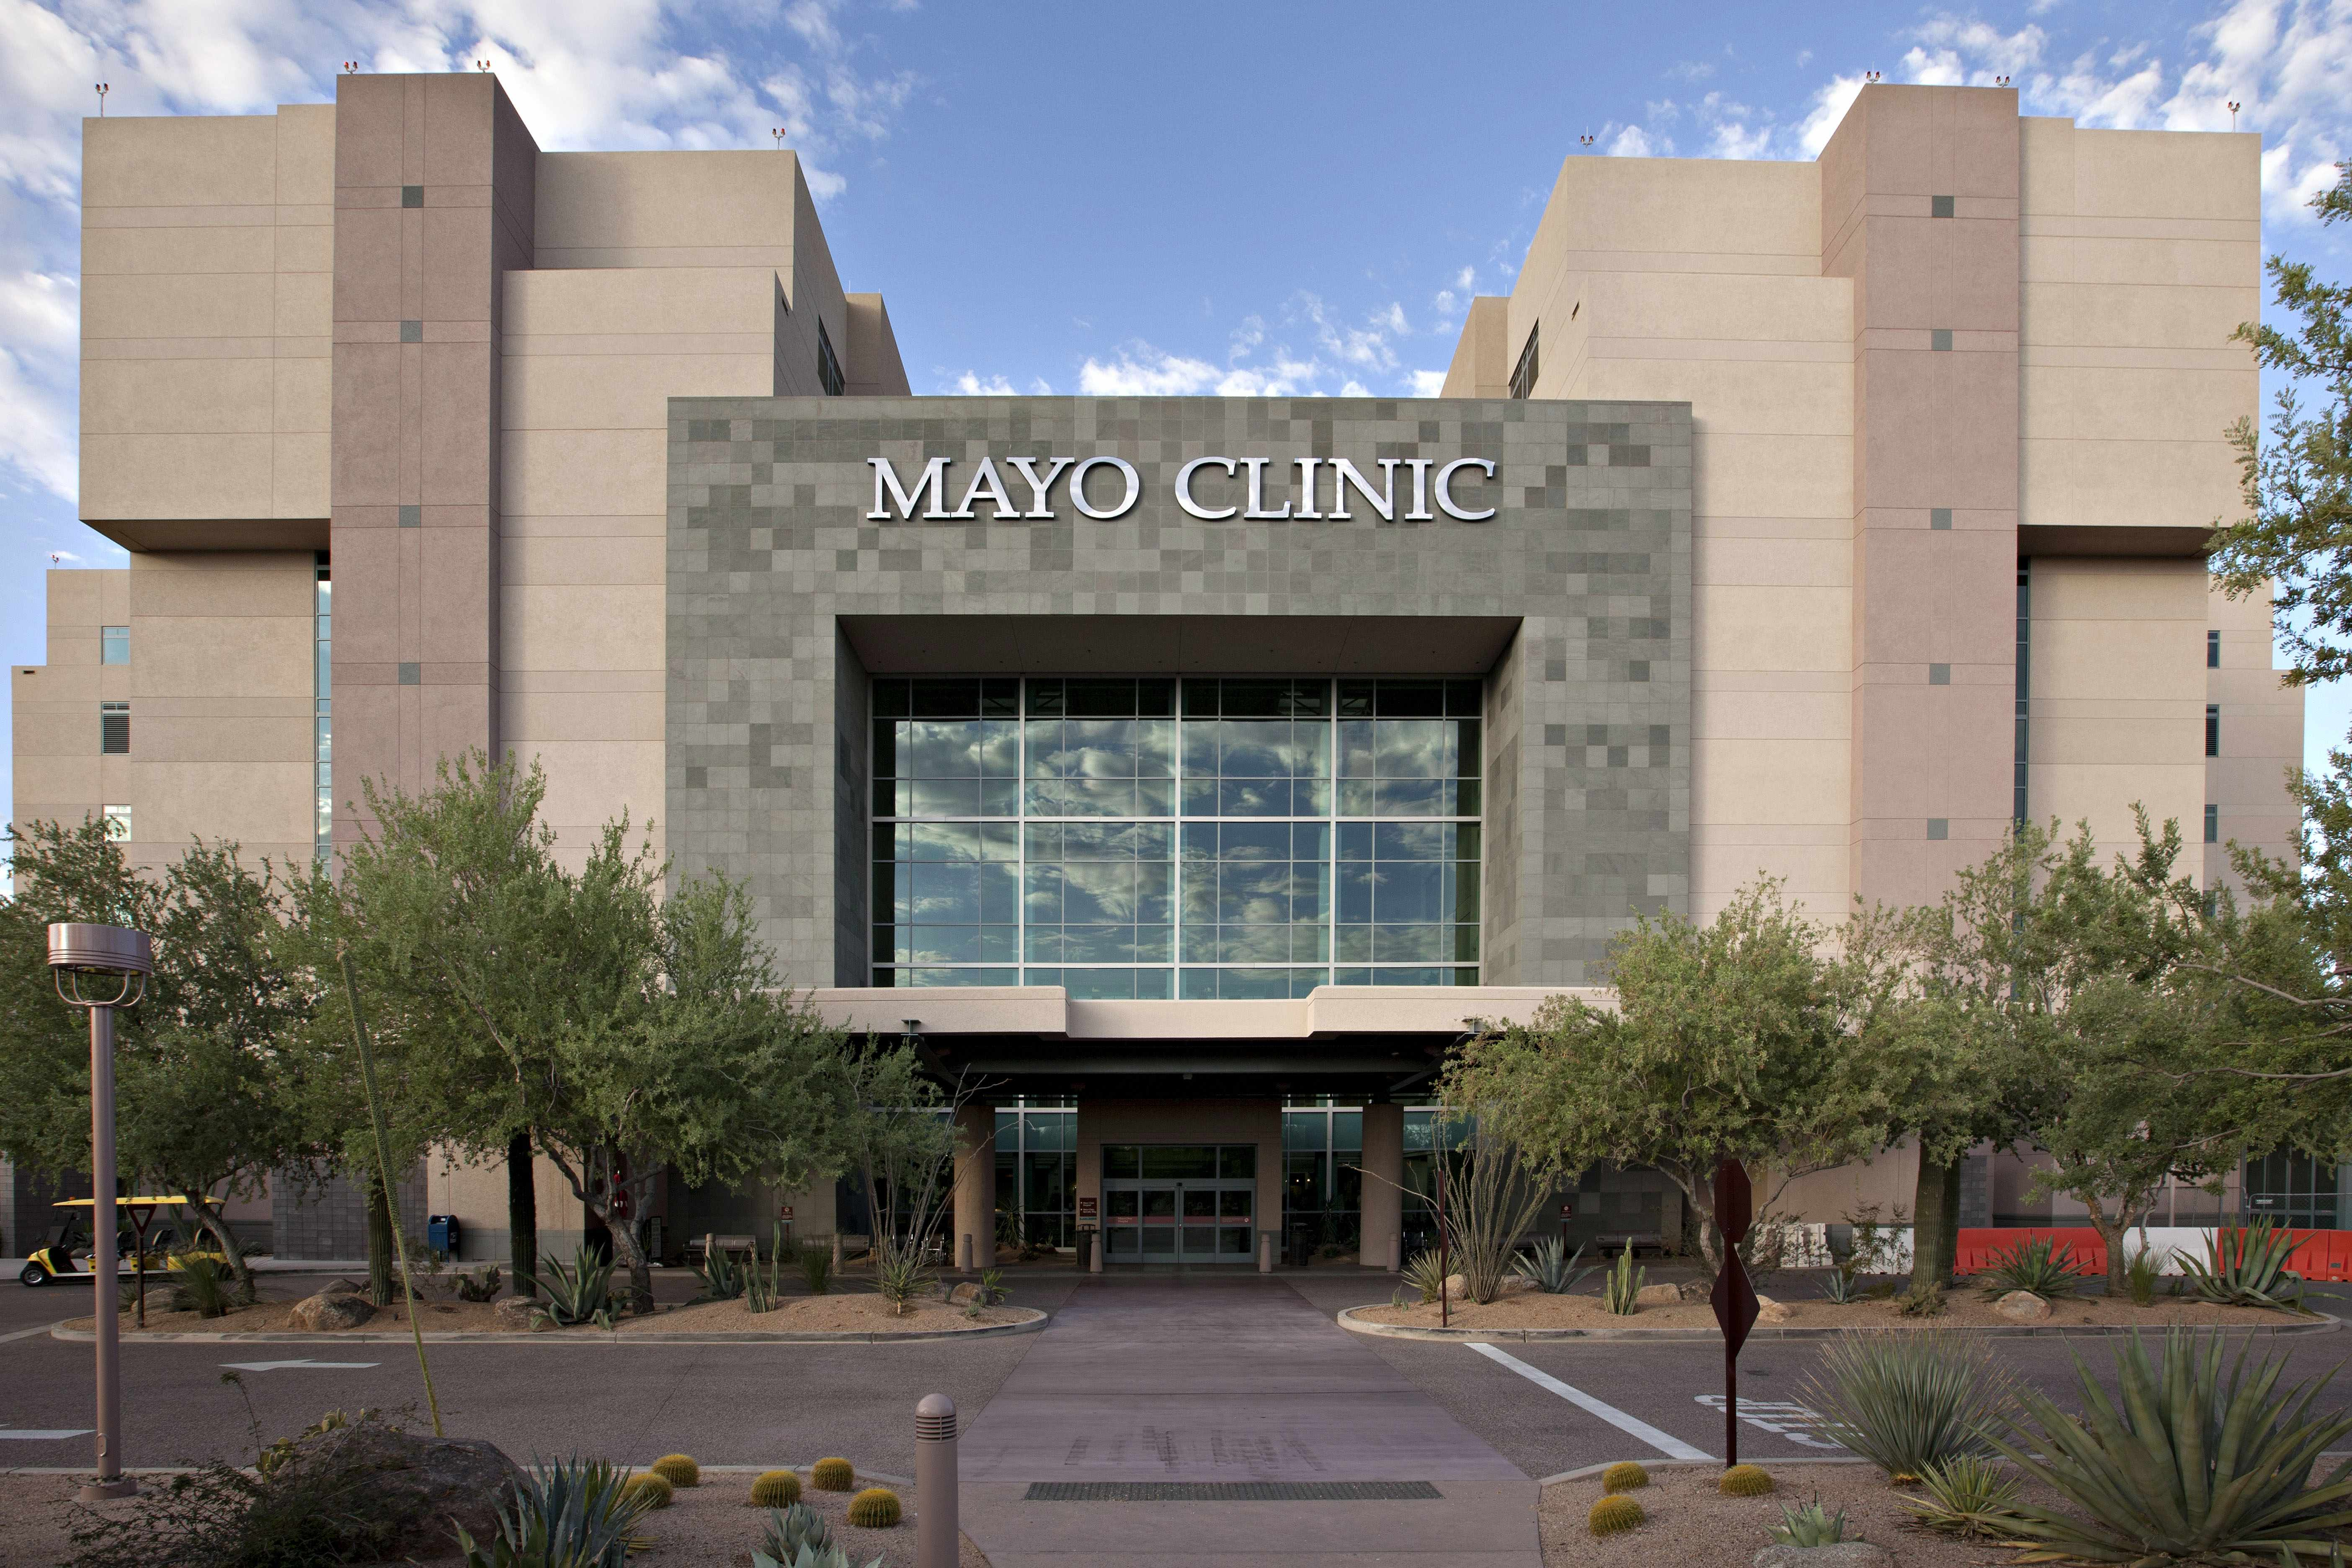 Mayo Clinic en Phoenix, Arizona